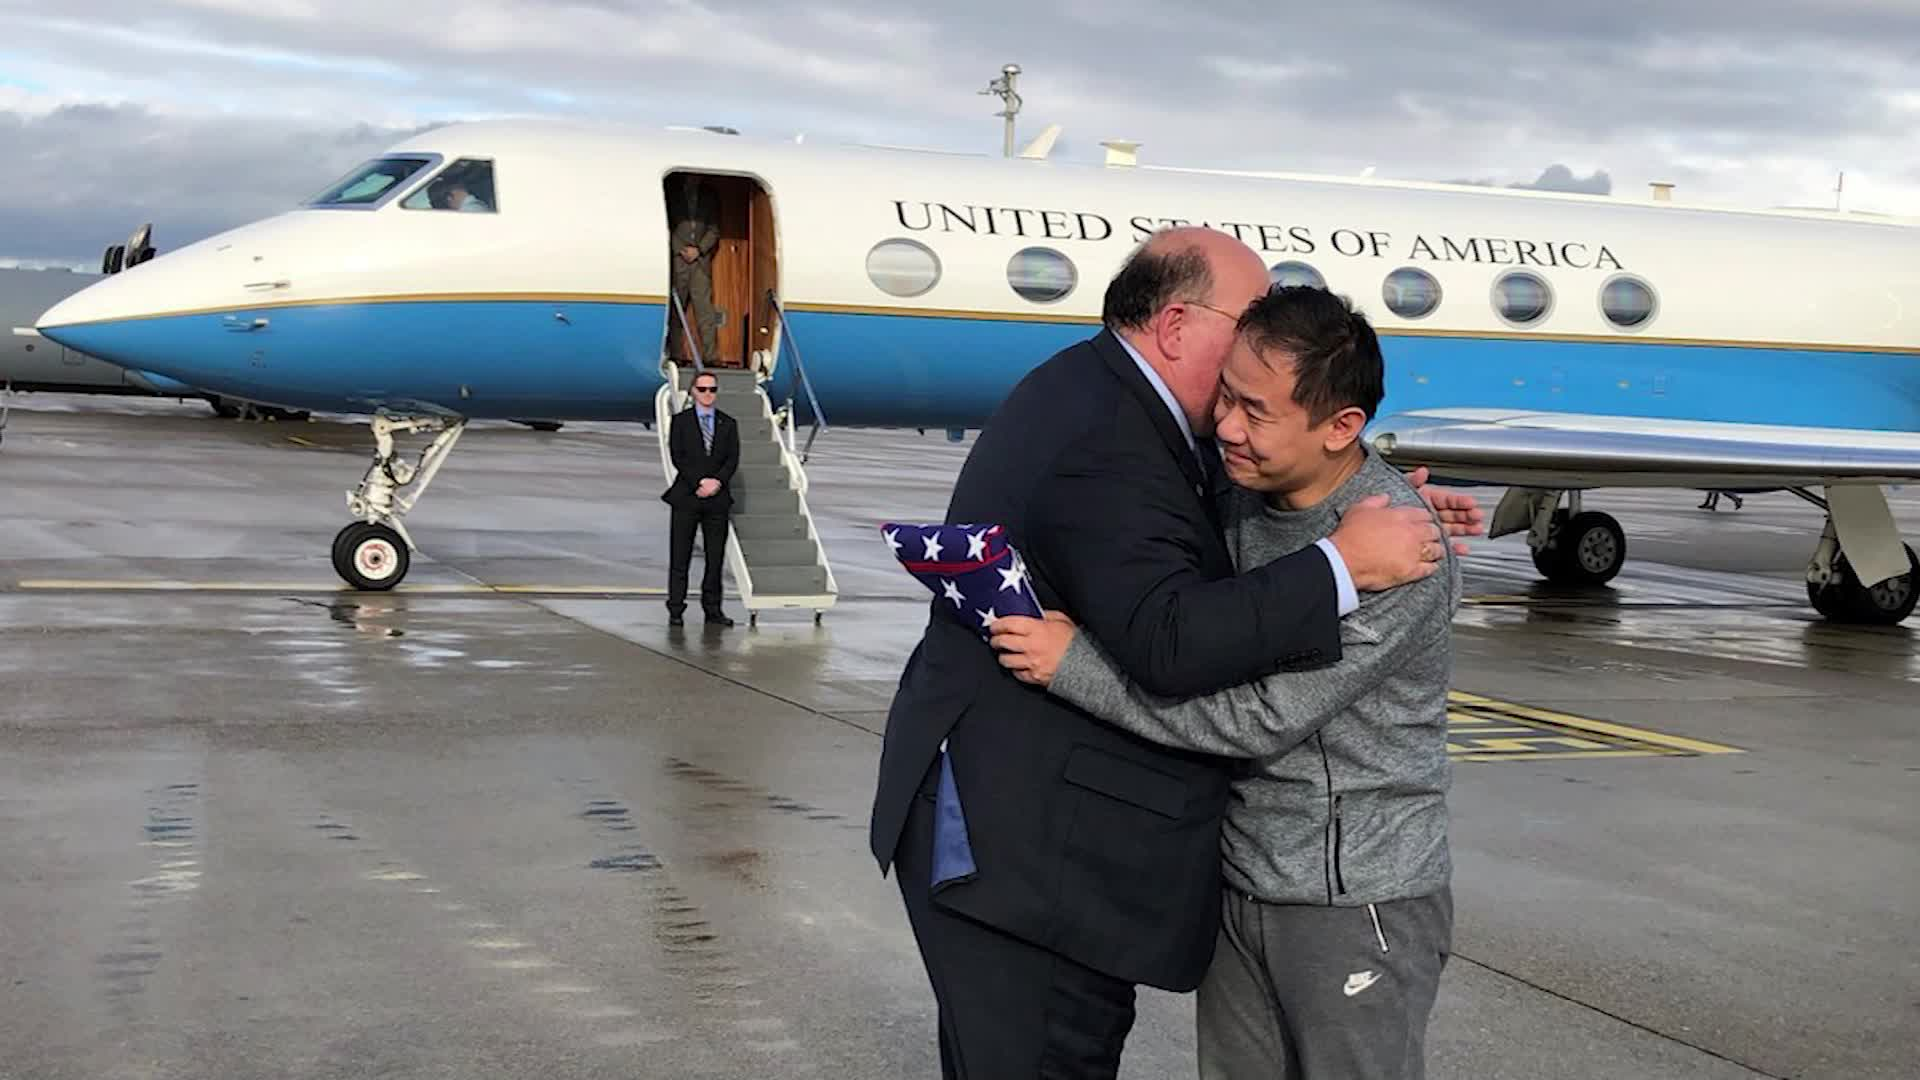 Chinese-American graduate student Xiyue Wang, detained for years on suspicion of being a spy, hugs an official after being freed from Iran on Dec. 7, 2019. (Credit: CNN)